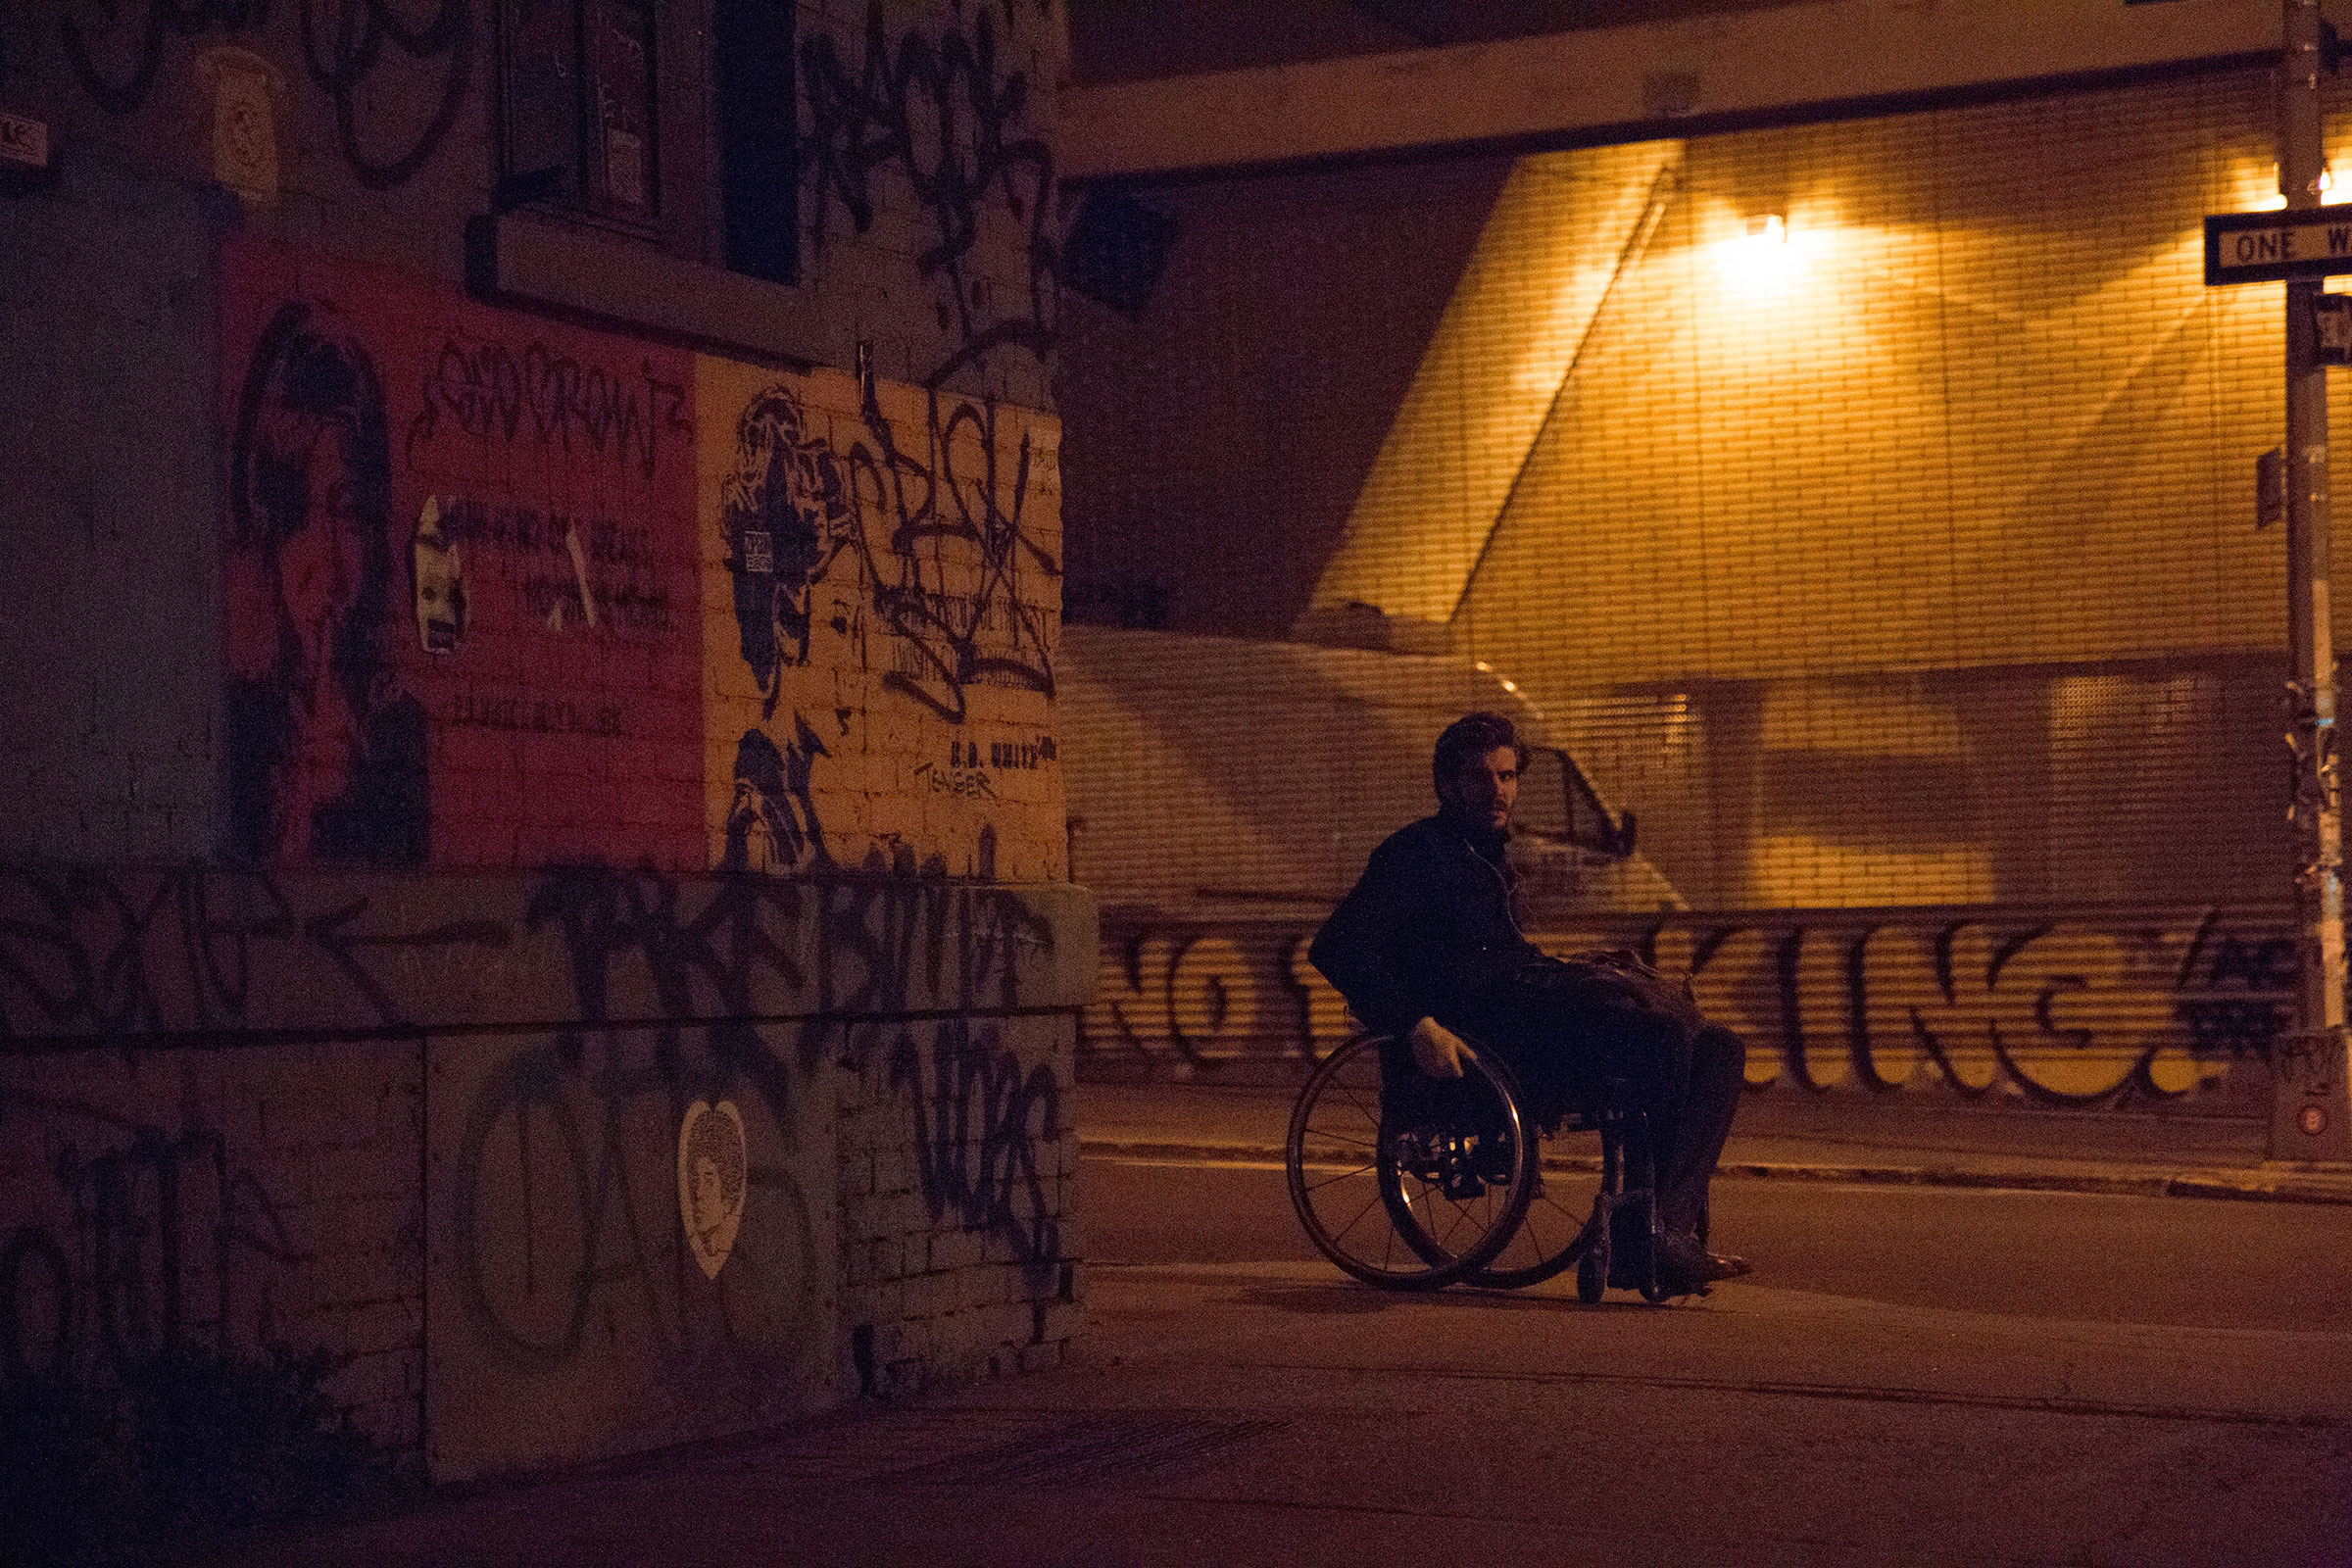 B.D. White severed his spine during a pole-vaulting accident as a teen and can't use his legs, but he doesn't let his disability hinder his passion for street art. Under the cover of darkness, the 31-year-old artist goes to the areas of Brooklyn, NY, where he's planned to put up his stencils and wheat paste posters.